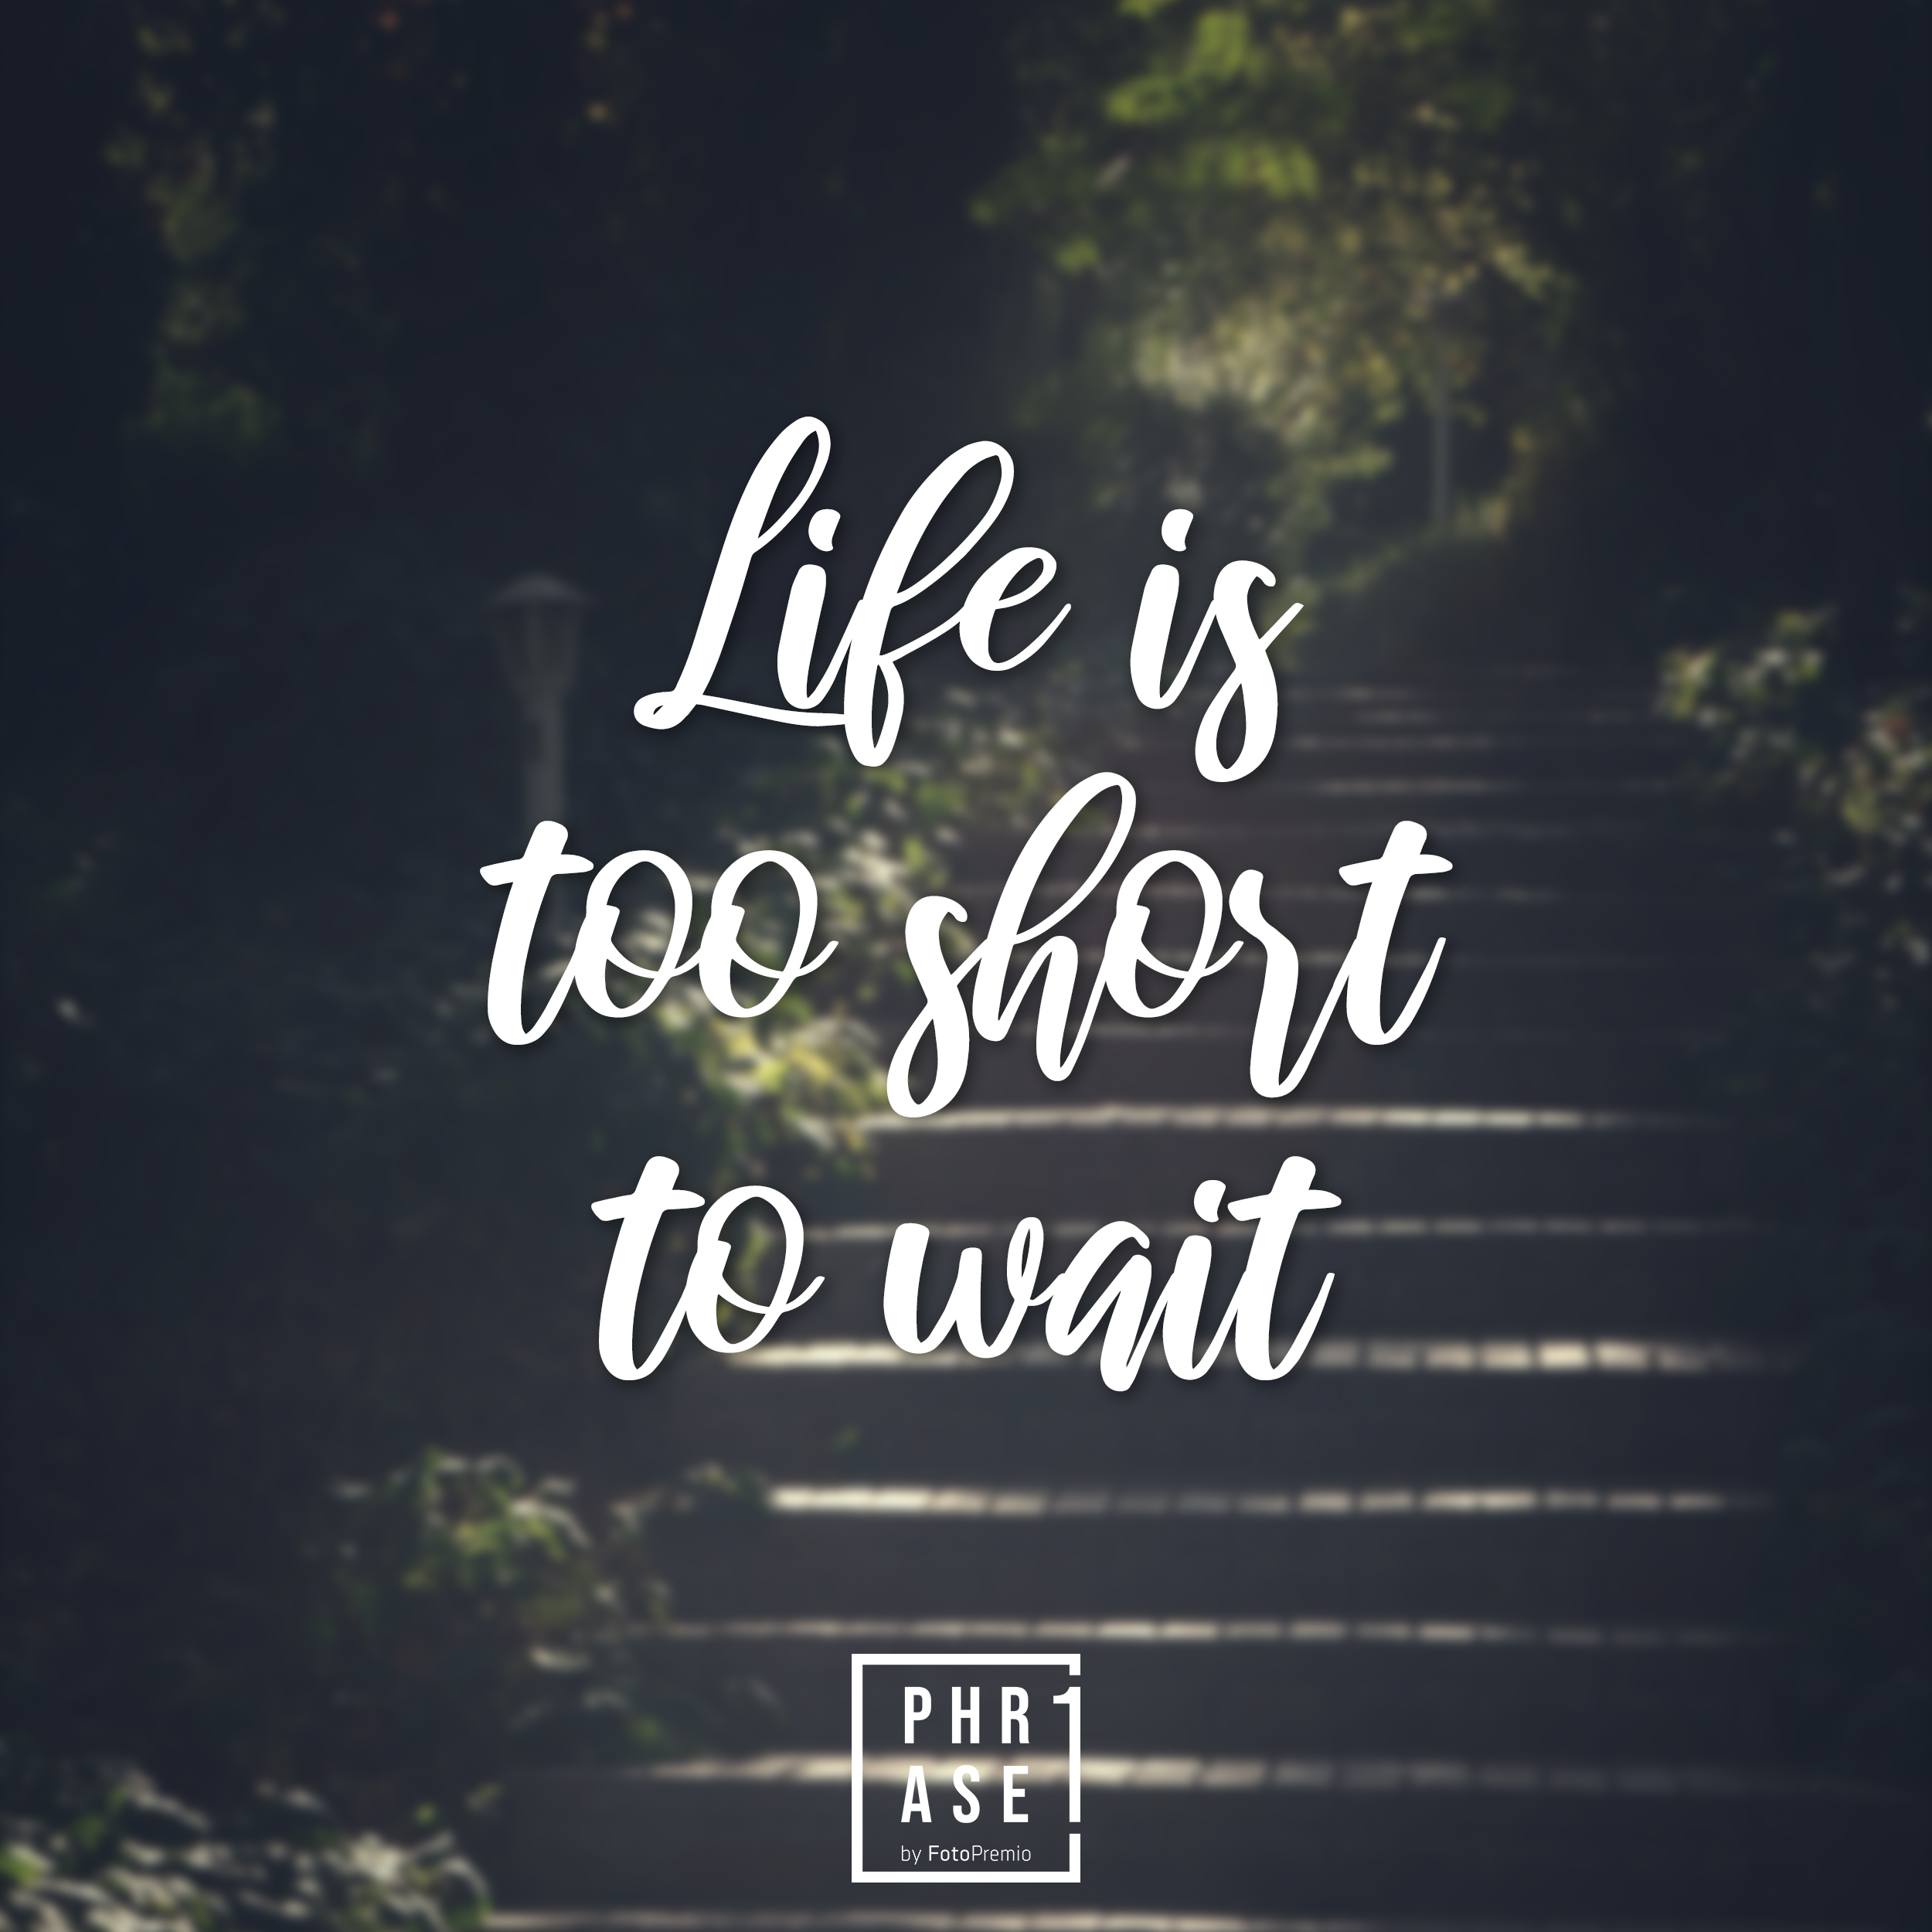 Life ist too short to wait